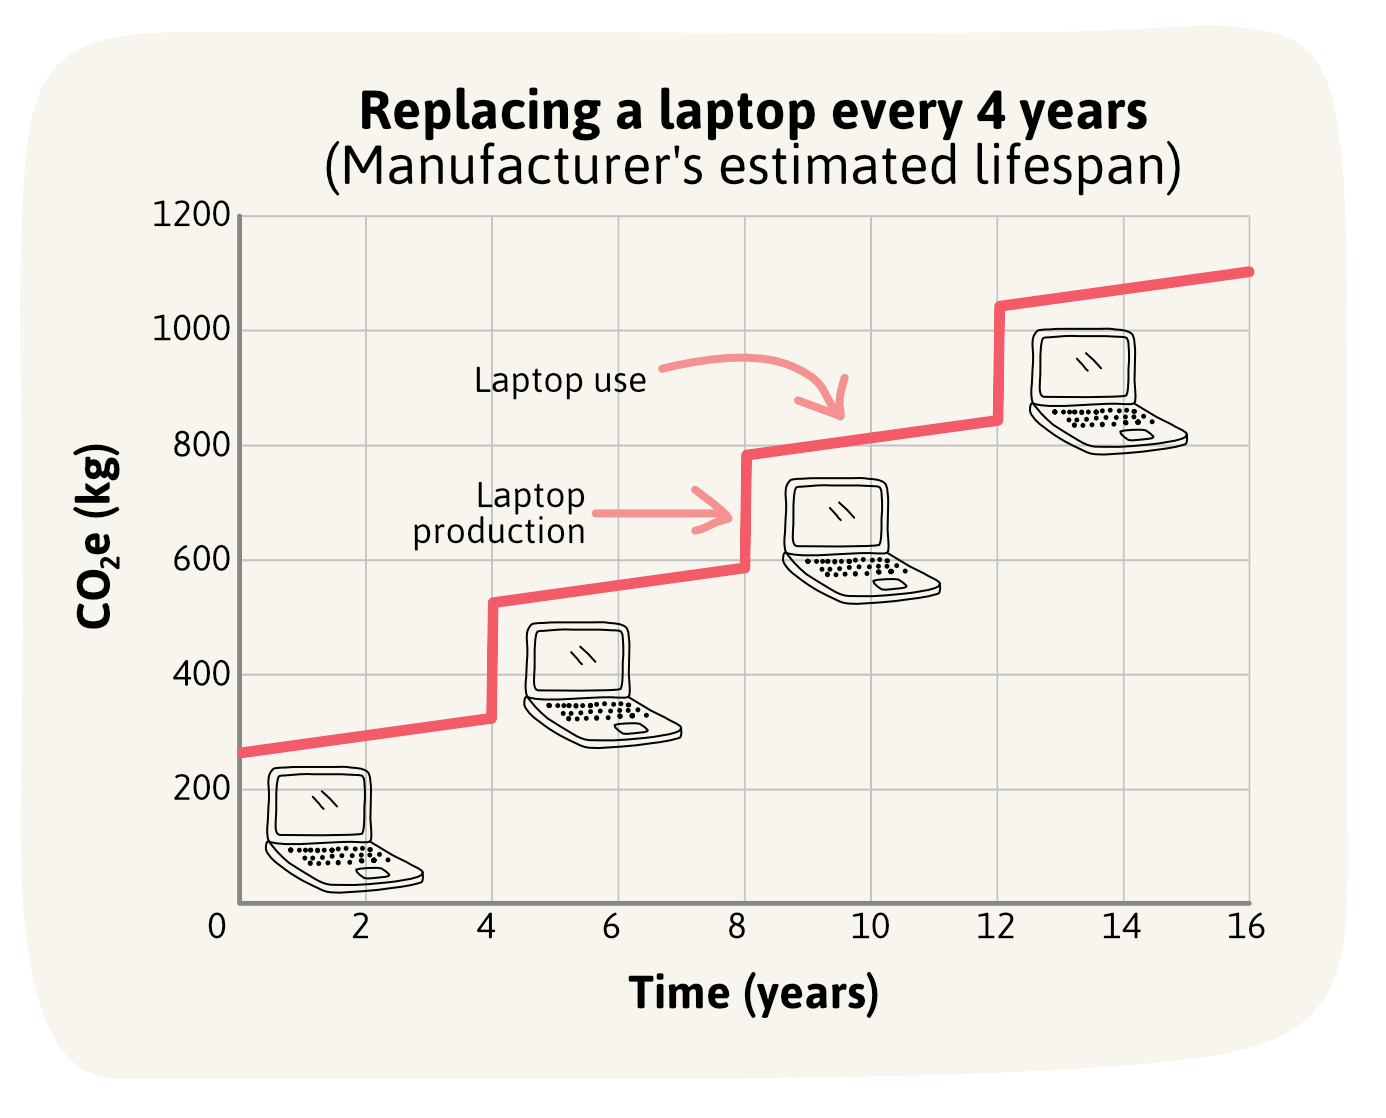 Replacing a laptop every 4 years